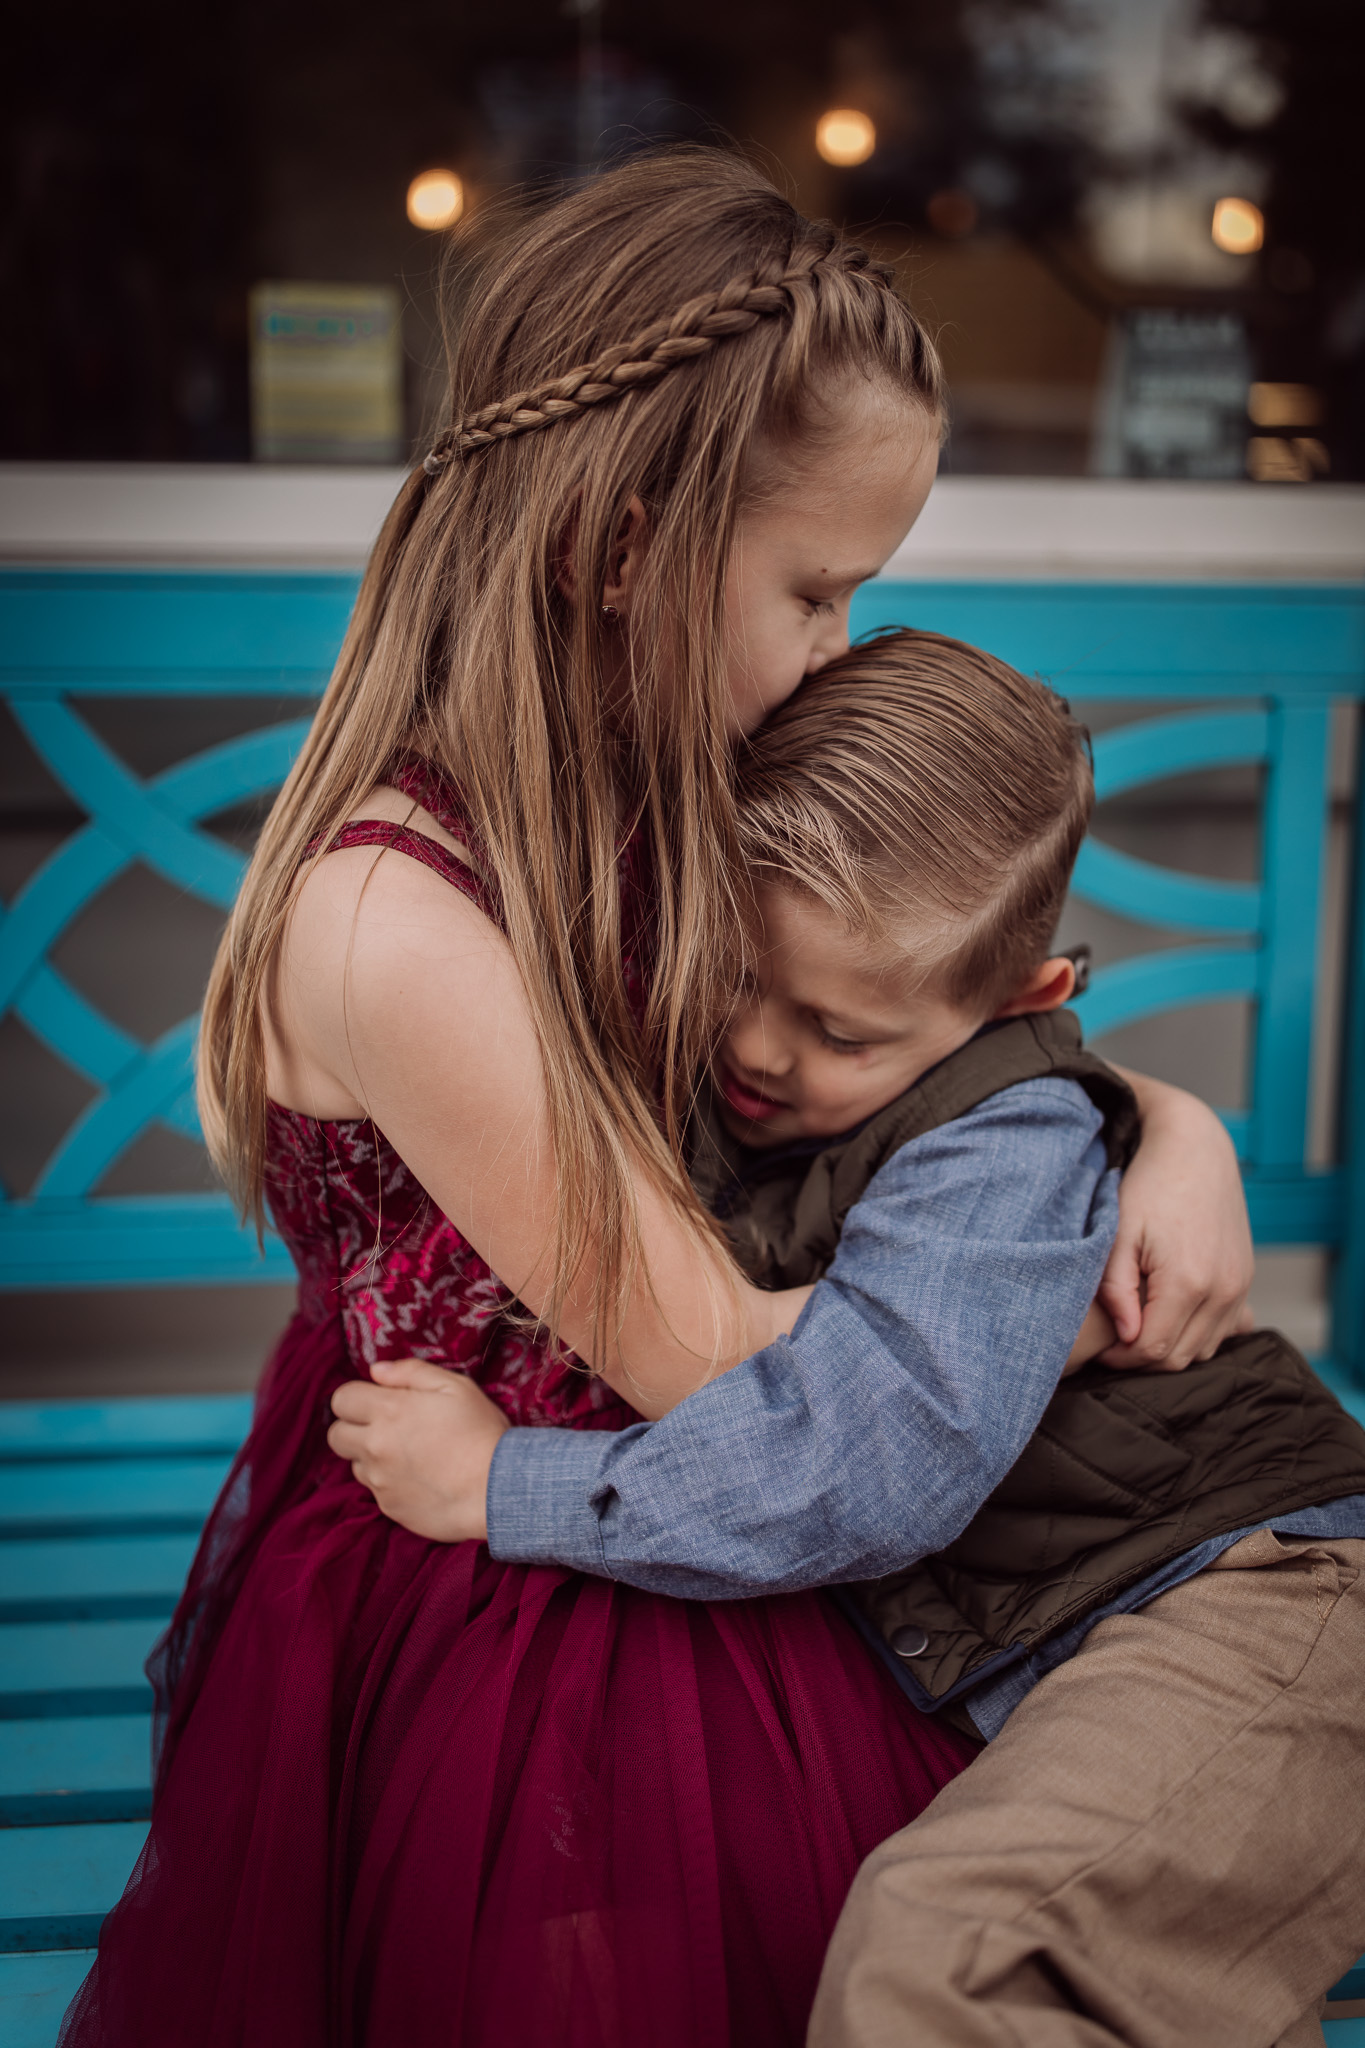 sibling pose and connection